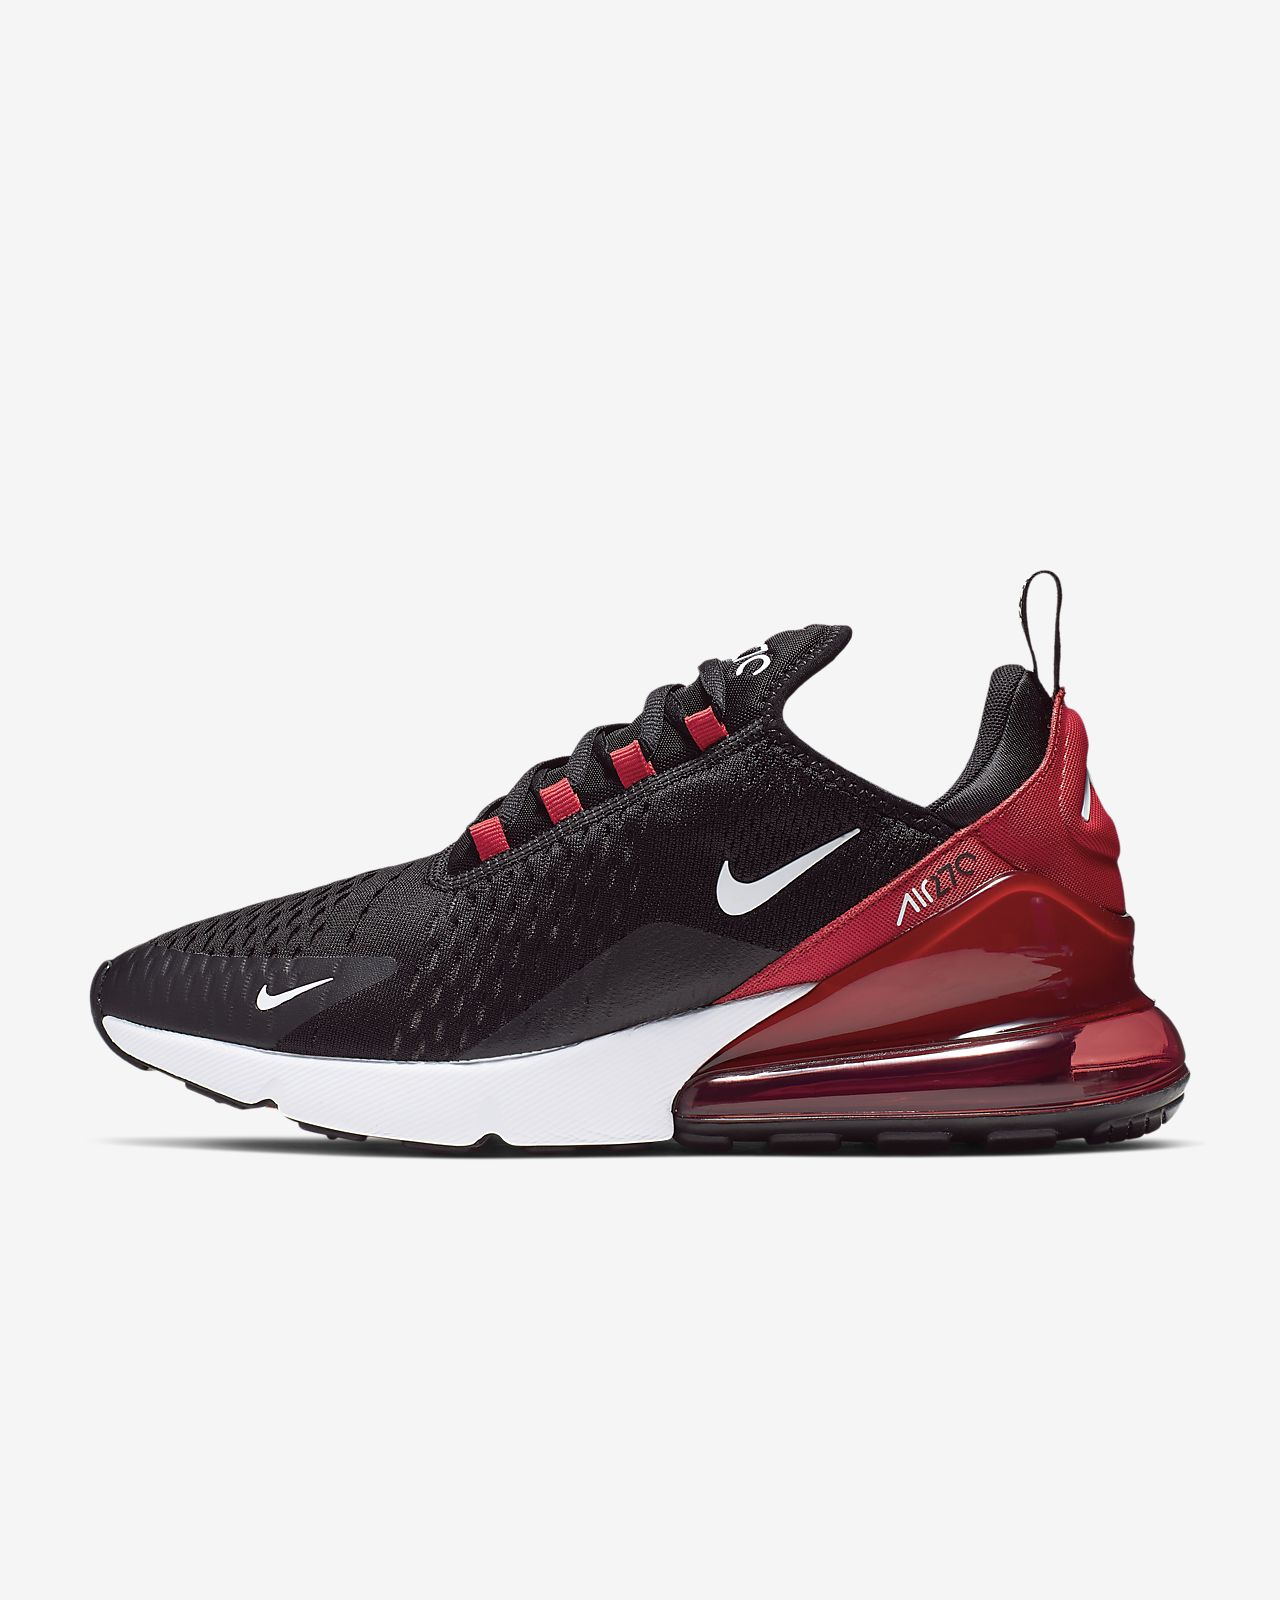 ccb57b24618b Nike Air Max 270 Men s Shoe. Nike.com GB